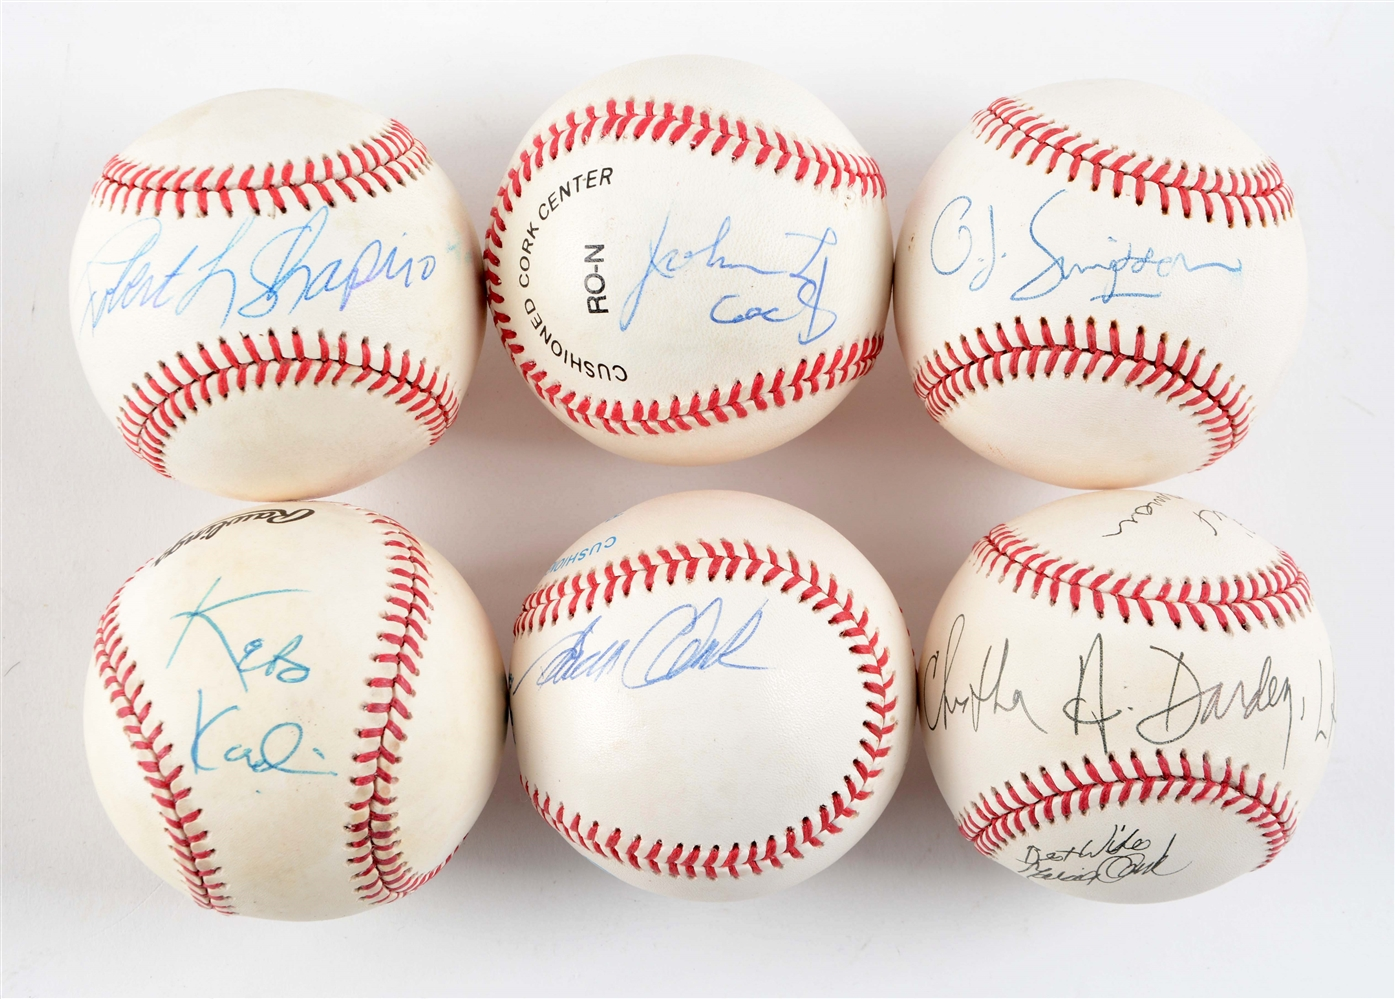 Lot of 6: The Trial of The Century Signed Baseballs.